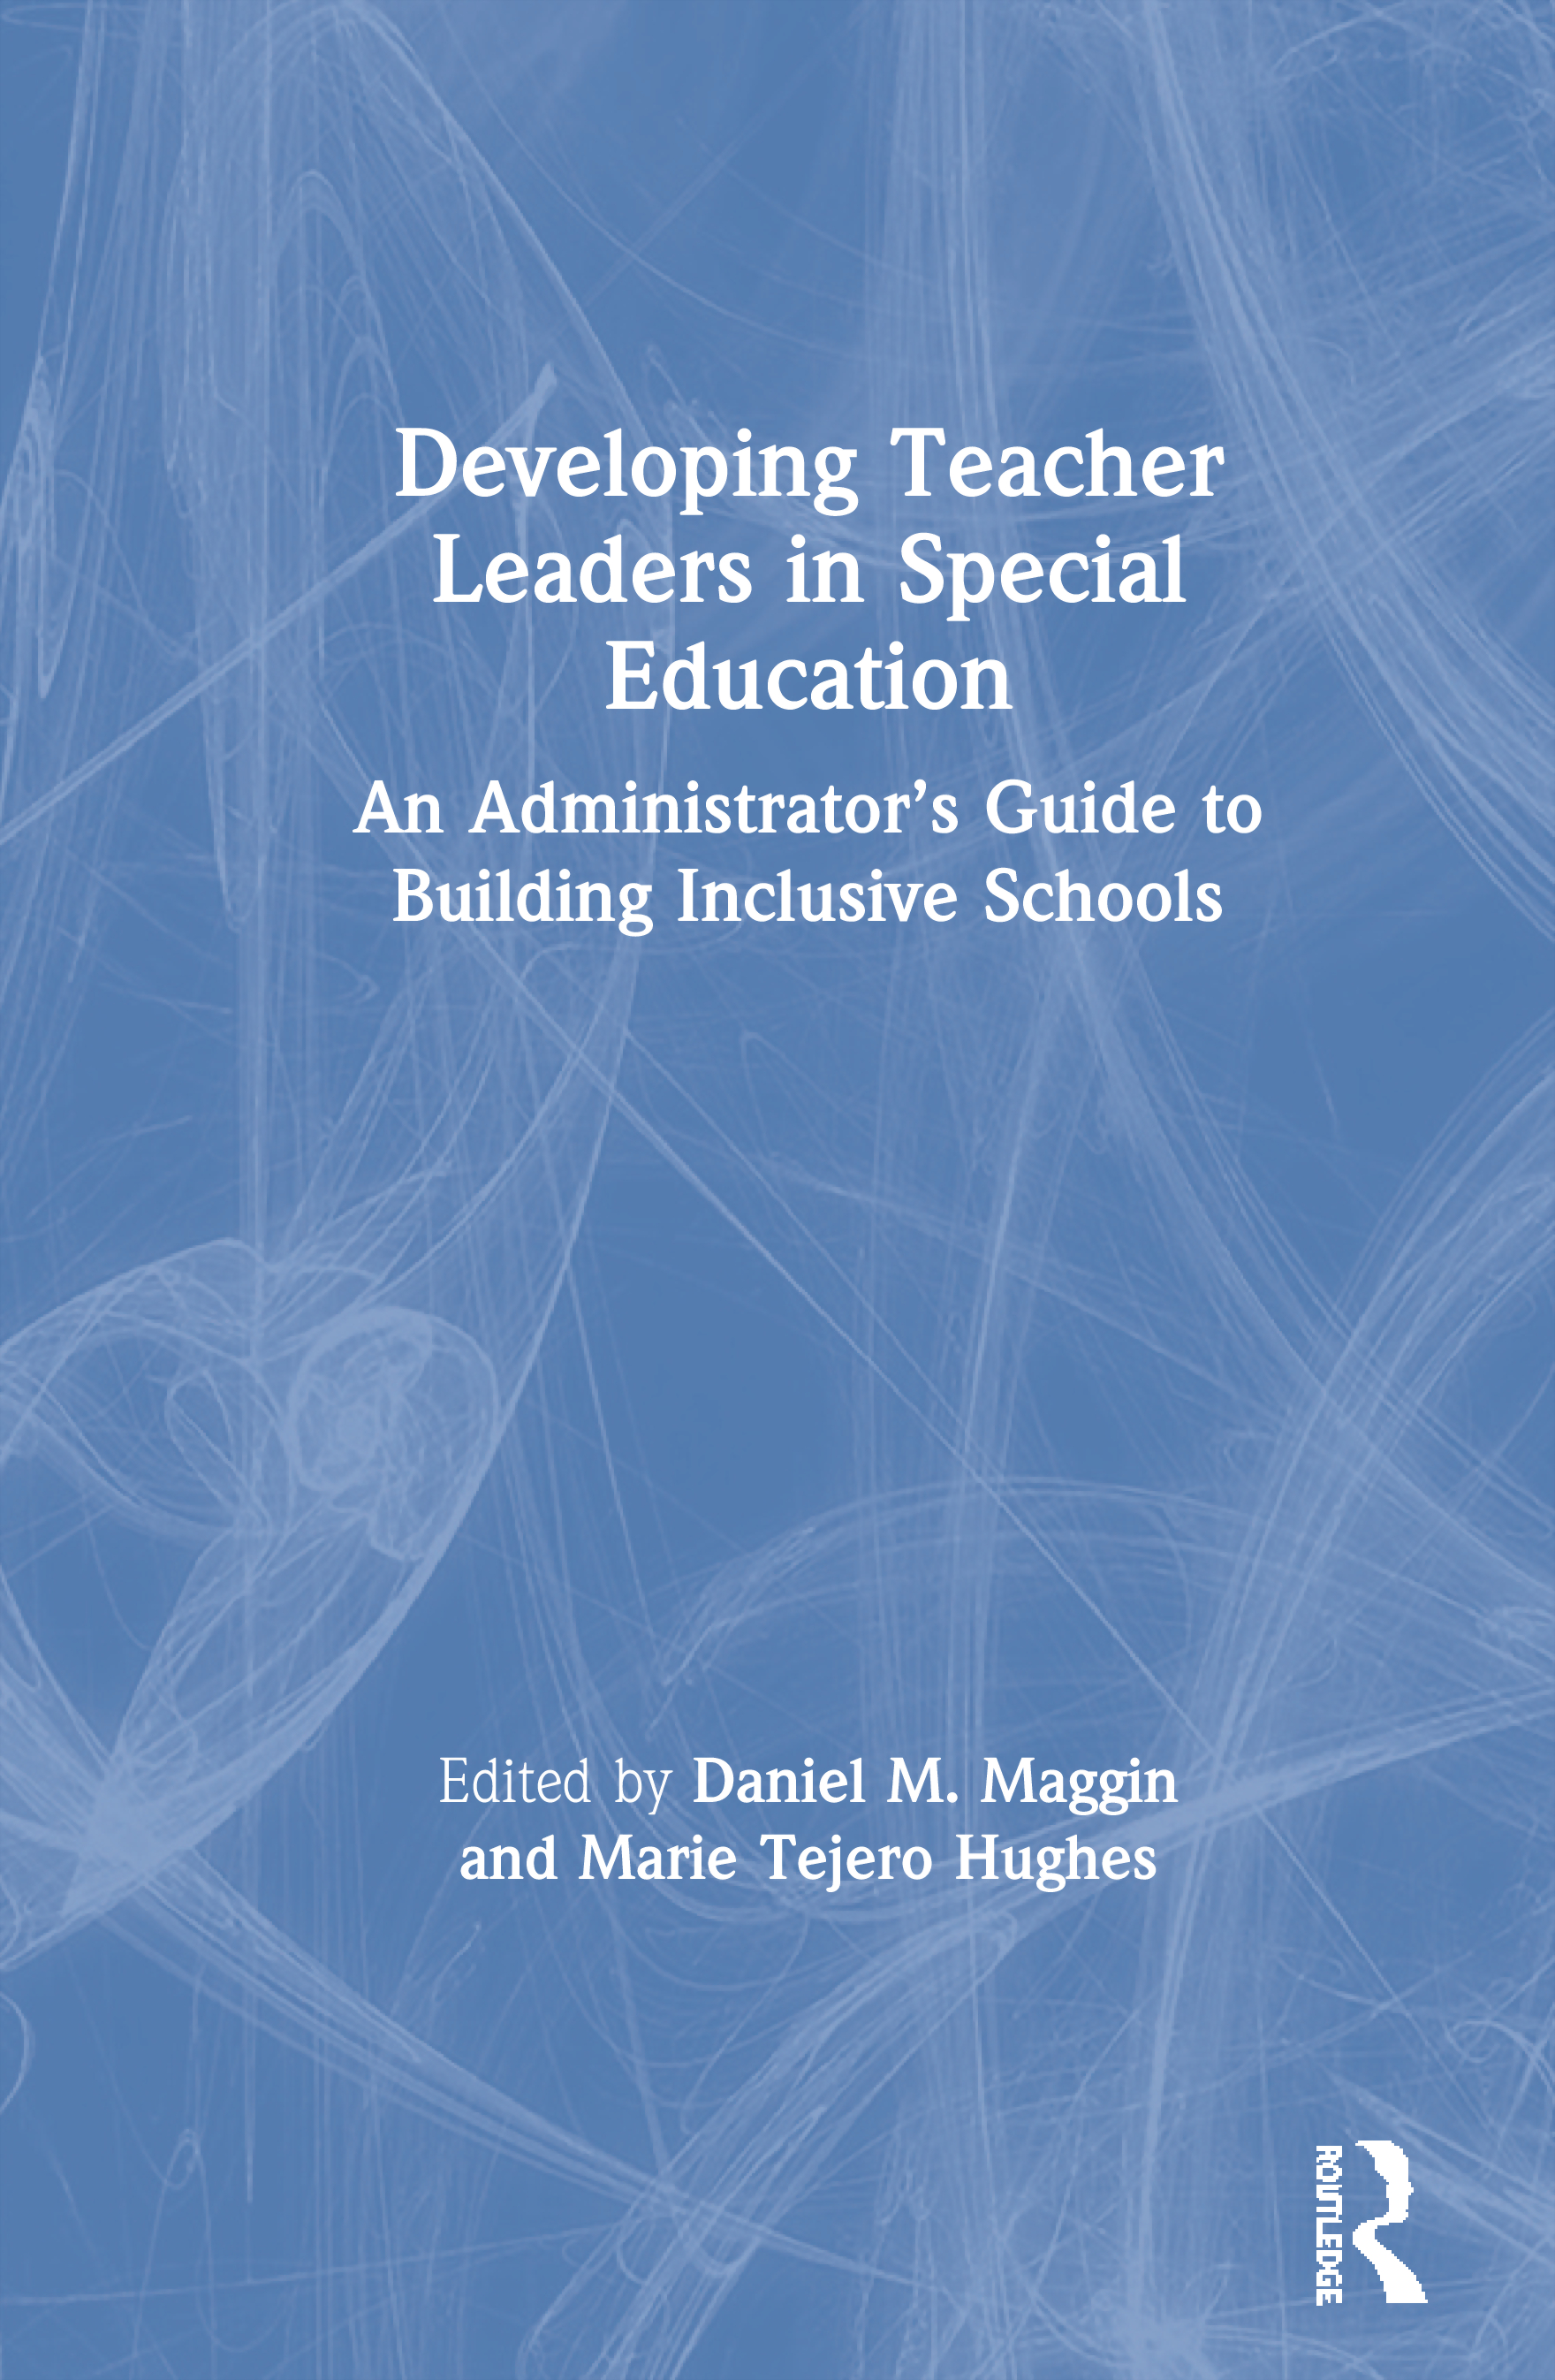 Developing Teacher Leaders in Special Education: An Administrator's Guide to Building Inclusive Schools book cover